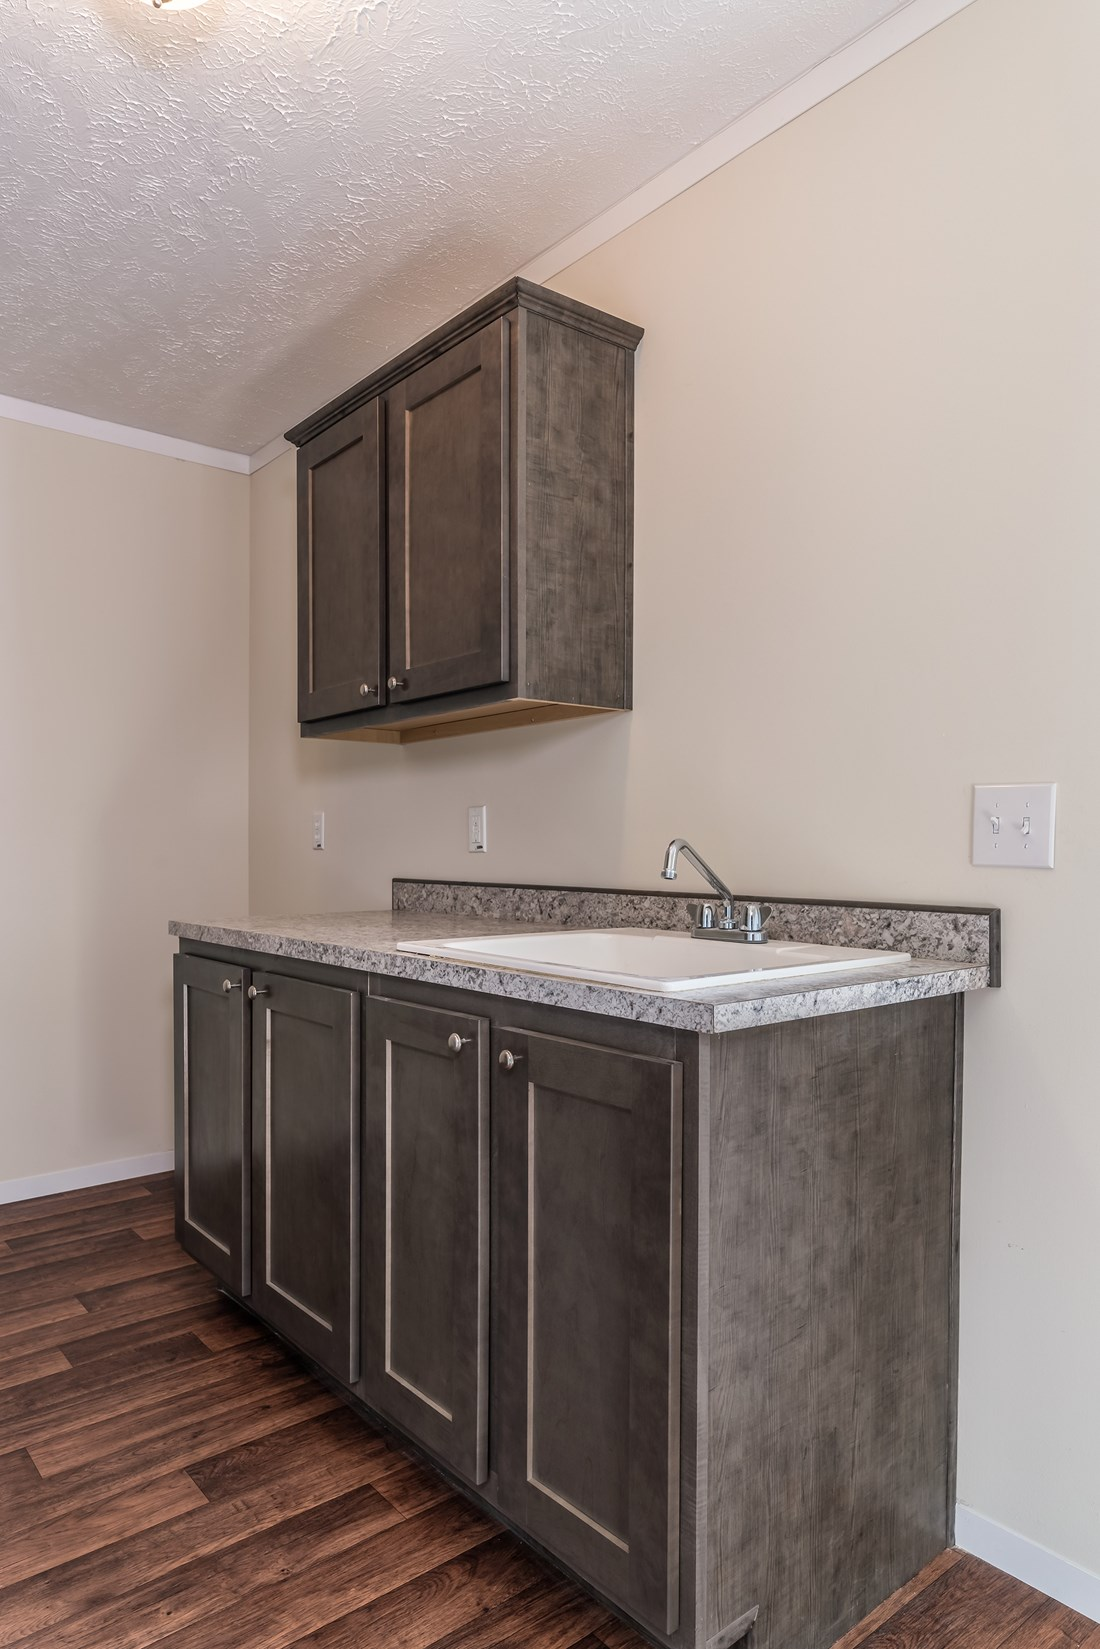 The WINCHESTER FLEX Utility Room. This Manufactured Mobile Home features 4 bedrooms and 2 baths.